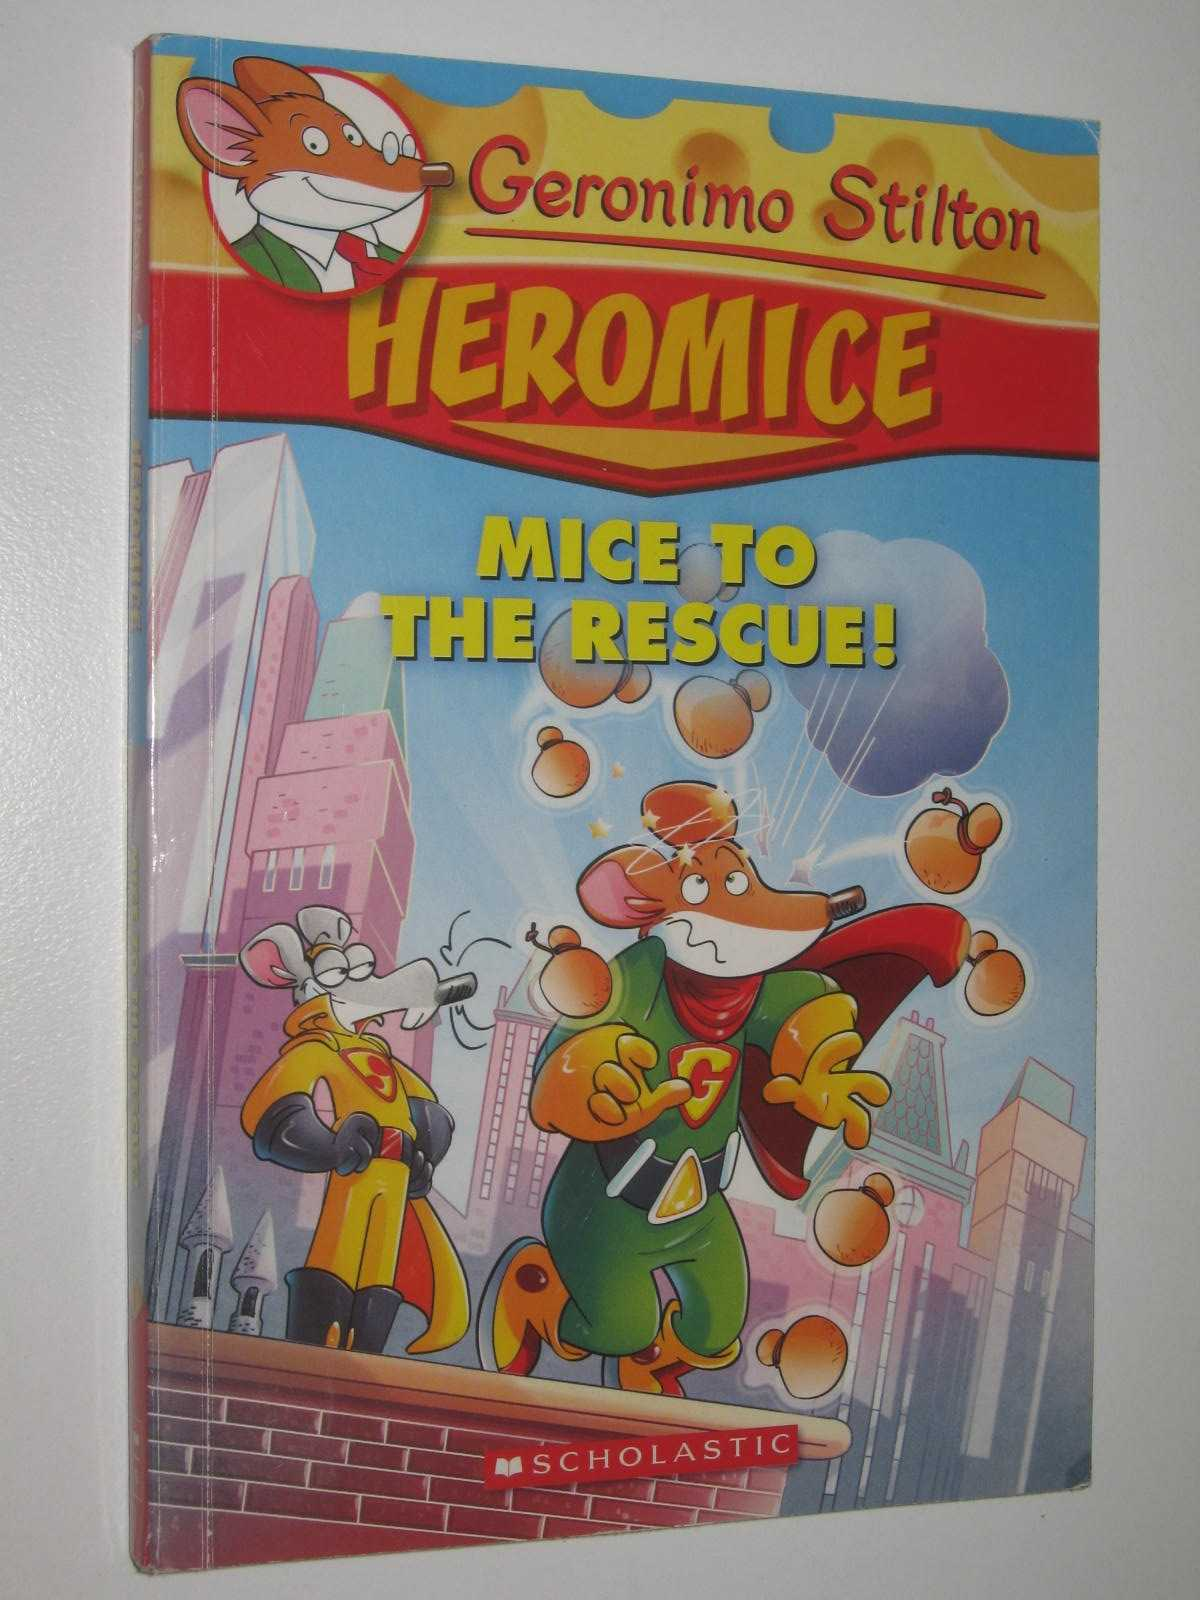 Image for Mice to the Rescue - Geronimo Stilton Heromice Series #1